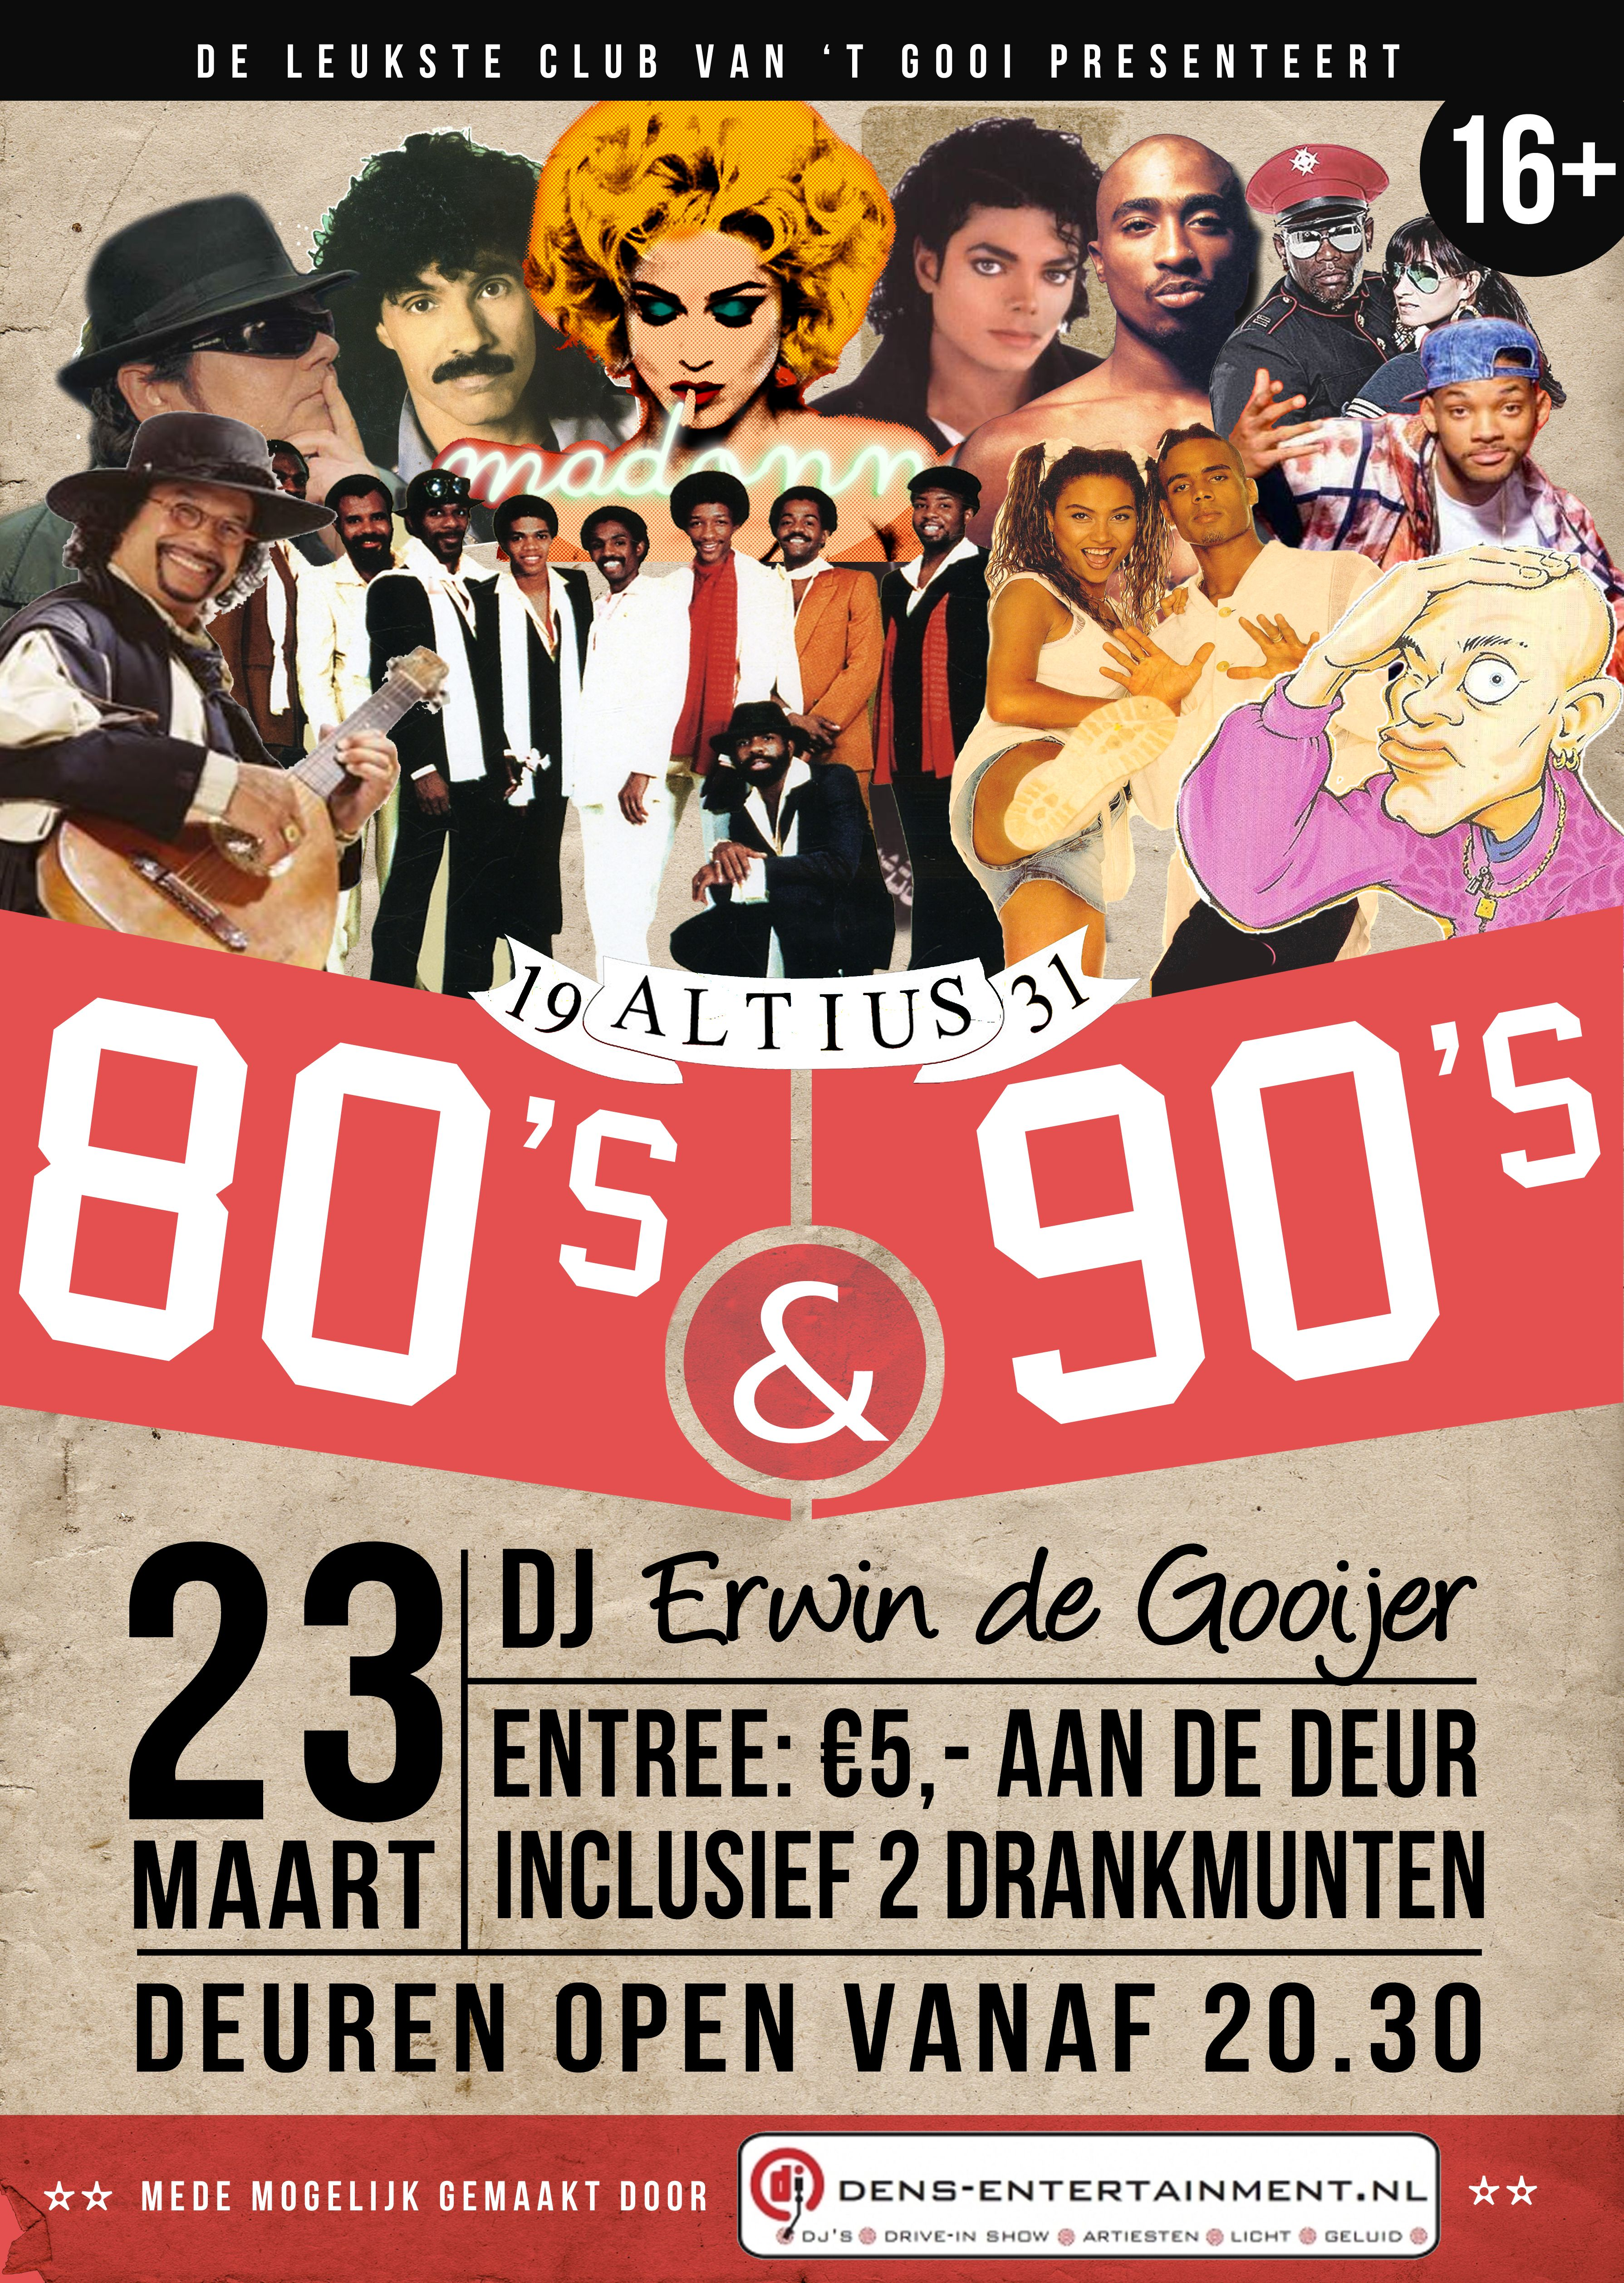 70s poster design template - Poster 80 S 90 S Party V V Altius Design By Michiel Wilman